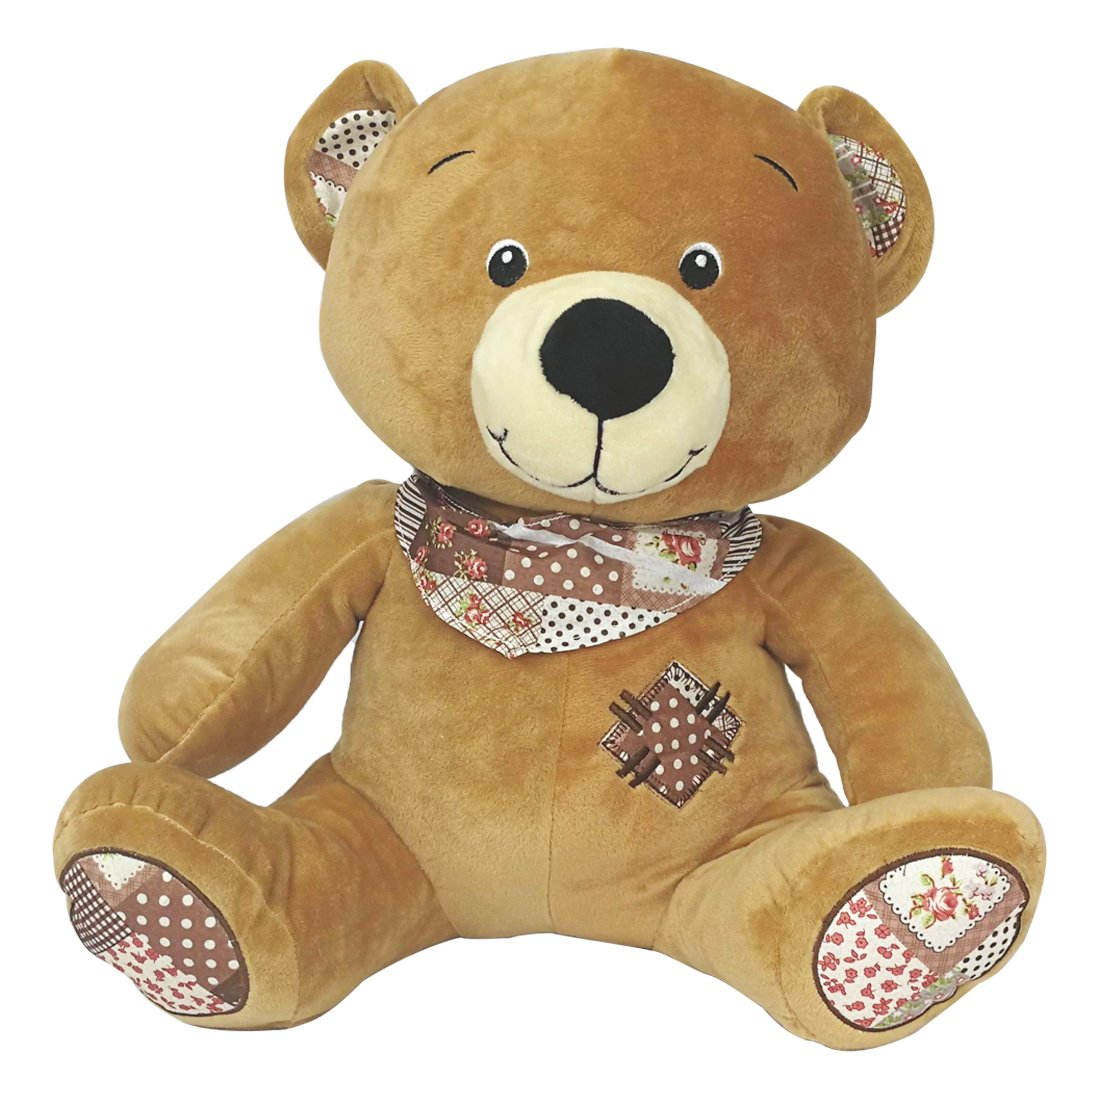 Buy My Baby Excels Teddy Bear with Muffler and Printed Ears Plush |  Imported Premium Quality | Soft Toy for Kids of Age 1 Year and Above | Light  Brown Colour |